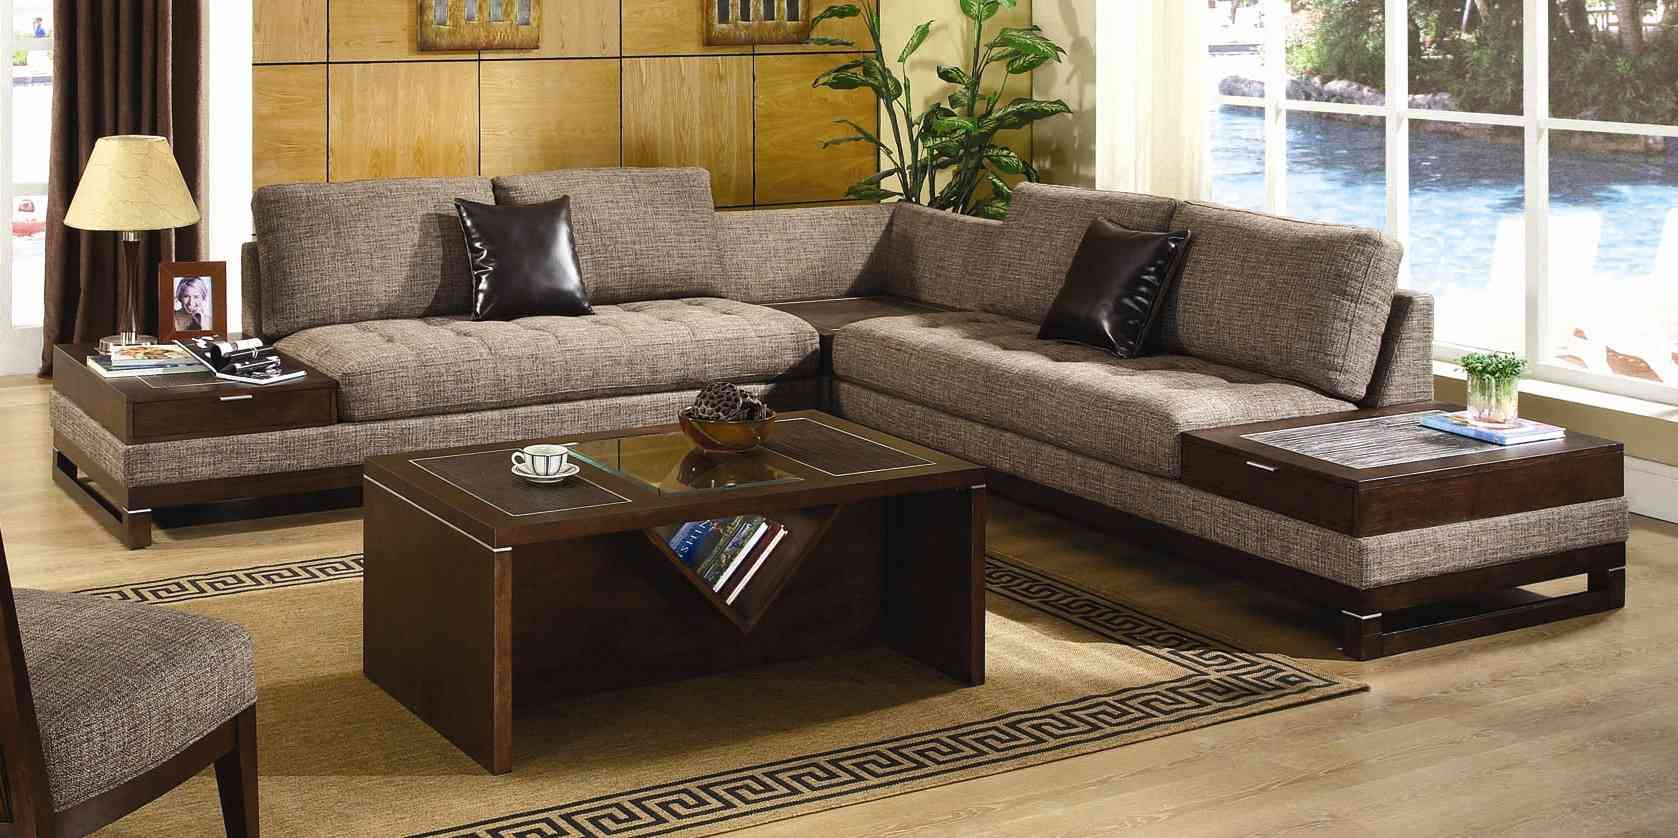 Elite Amazing Ideas Cheap Living Room Sets For Sale Modern Furniture with regard to Luxury Clearance Living Room Furniture